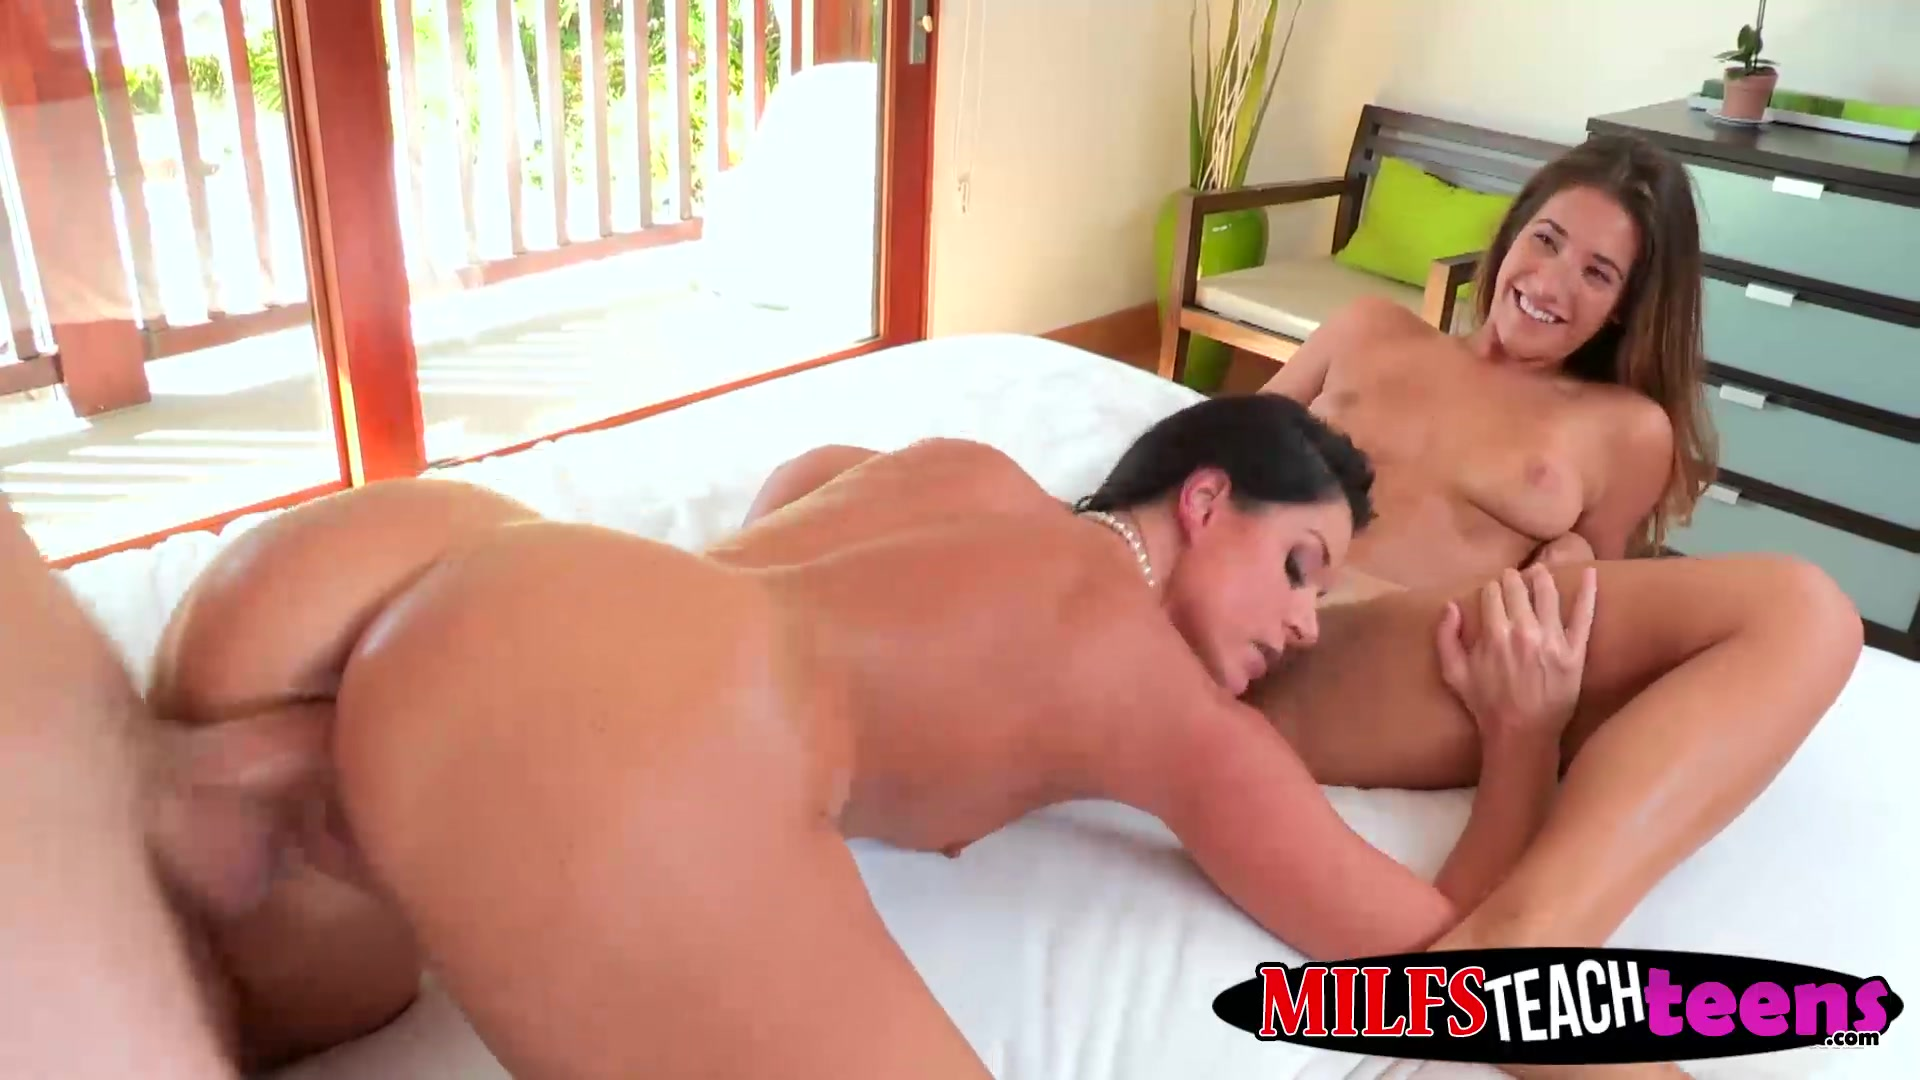 Corals noisy pussy torrent Sexy Galleries